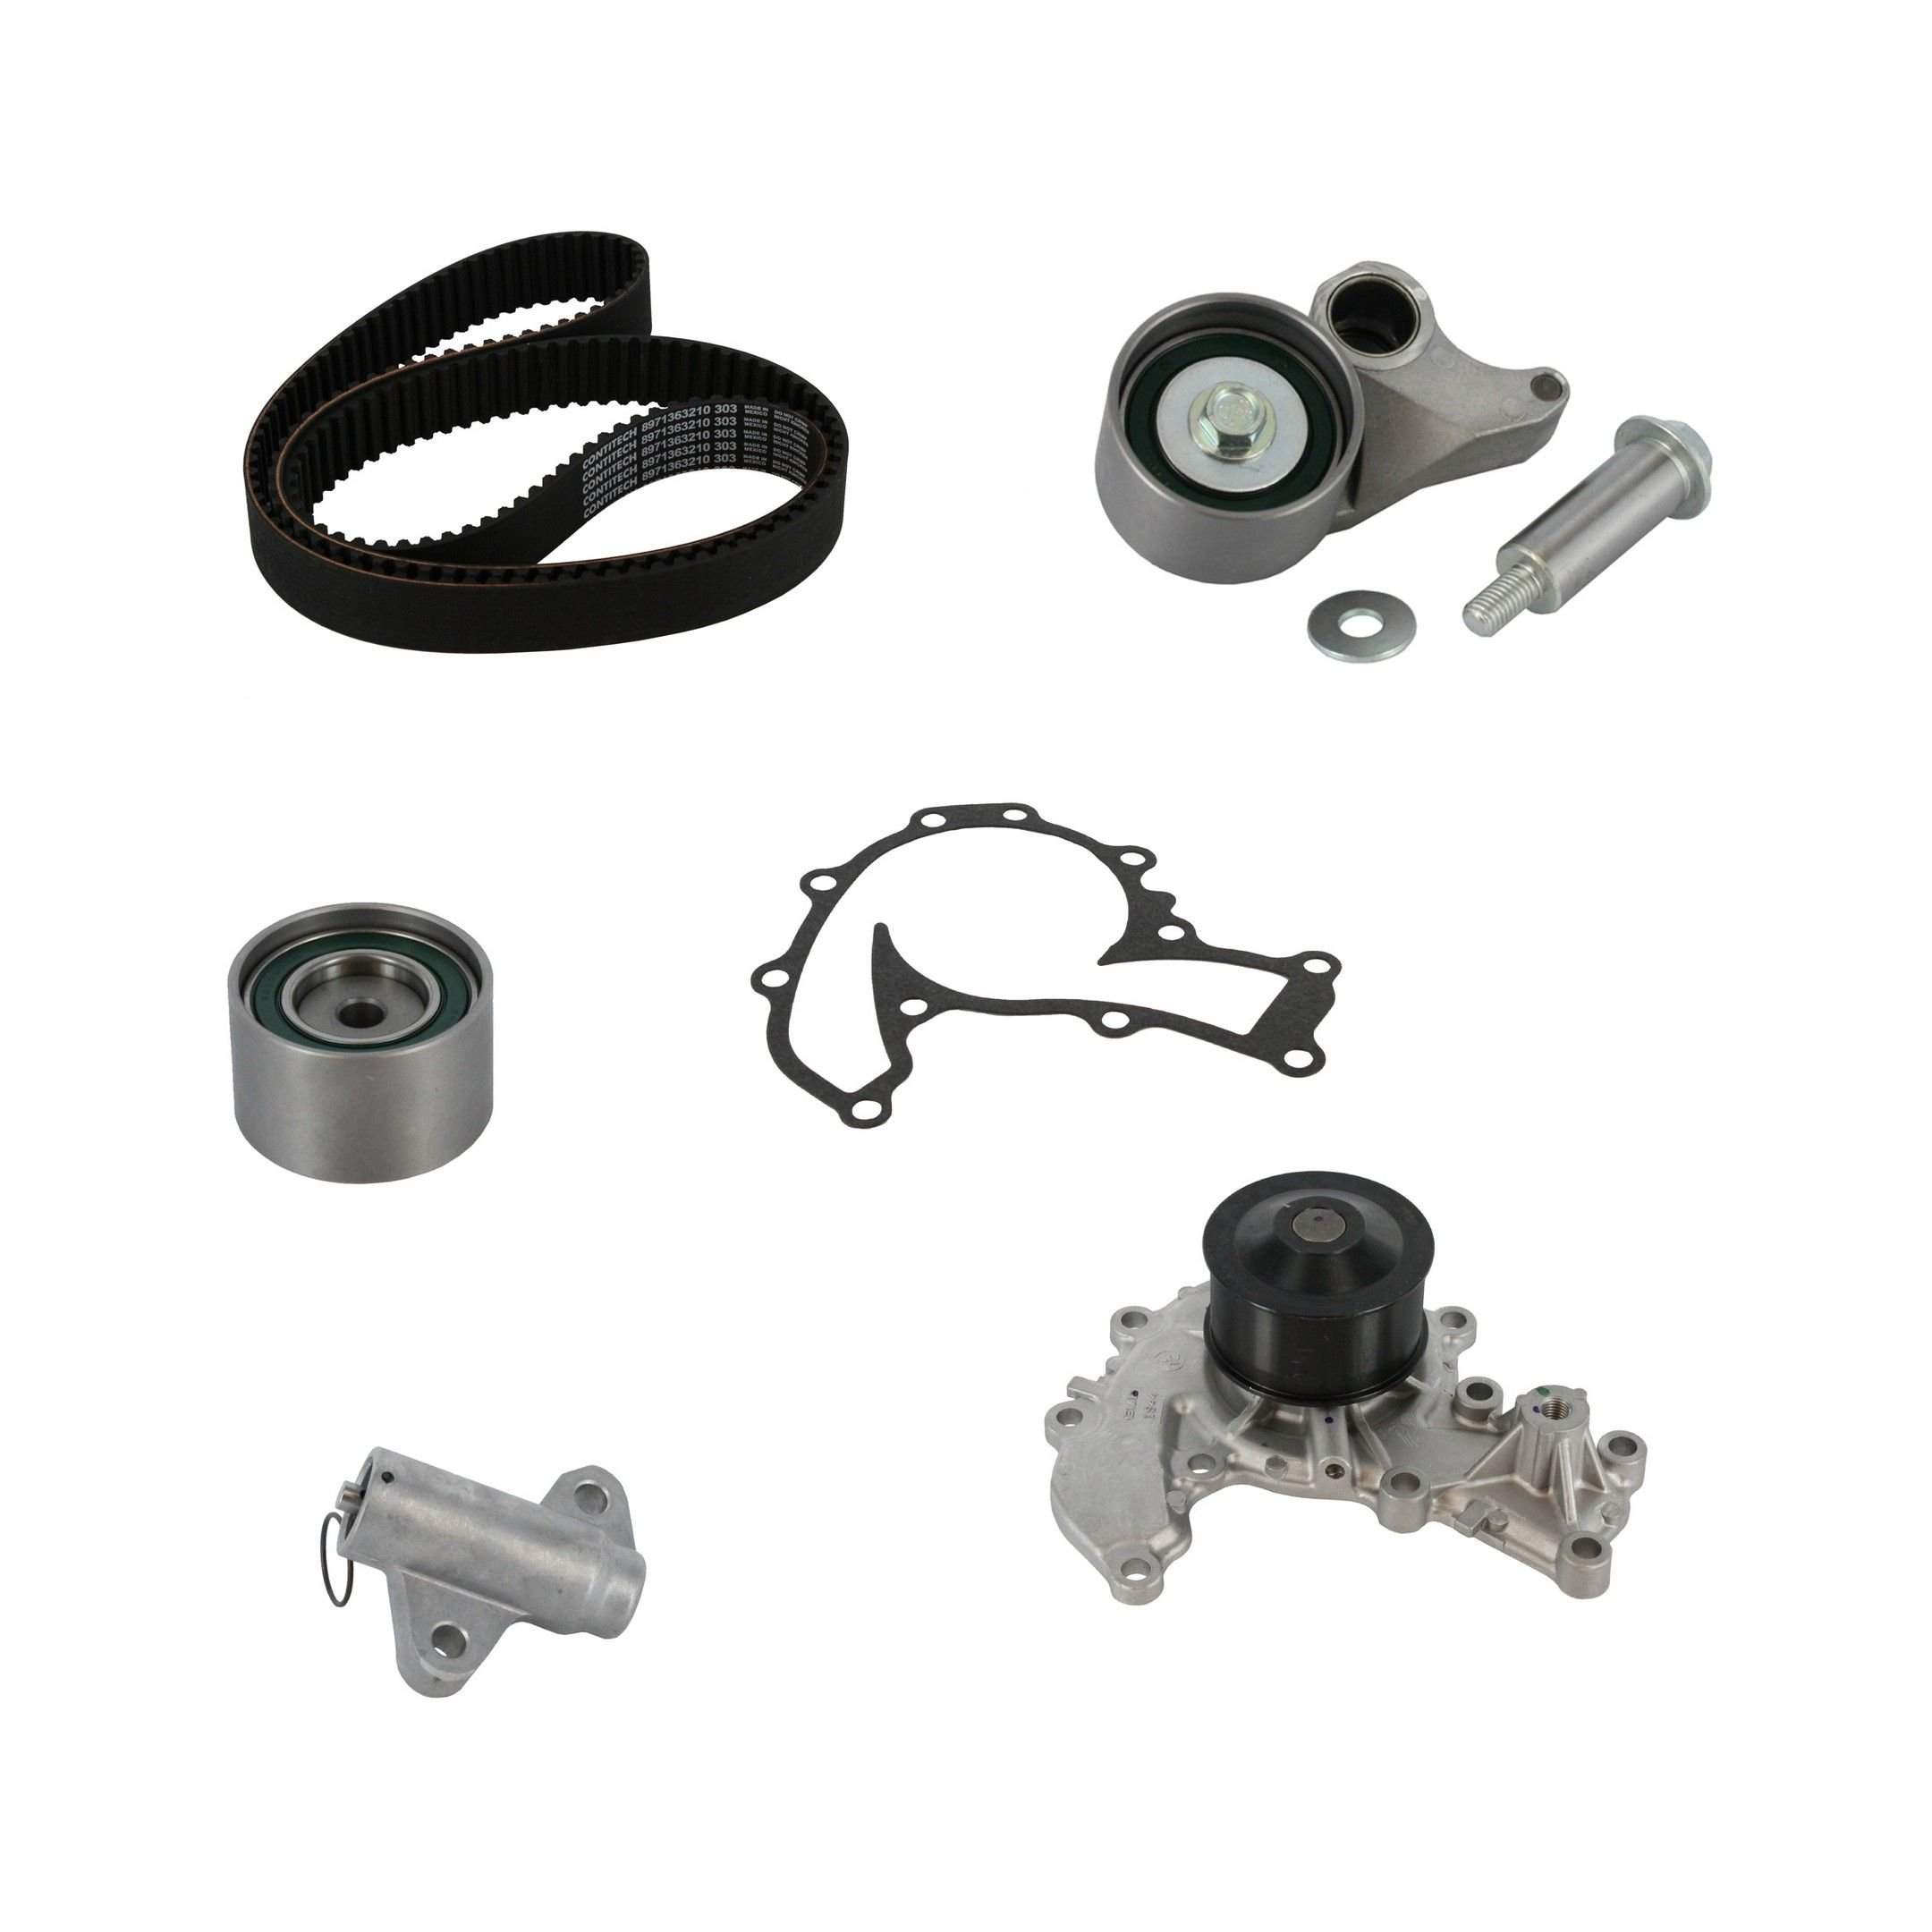 Isuzu Amigo Engine Timing Belt Kit With Water Pump Replacement 1999 Rodeo 2 2000 6 Cyl 32l Crp Tb303lk1 Pro Series Contitech Interference Eng Includes Hyd